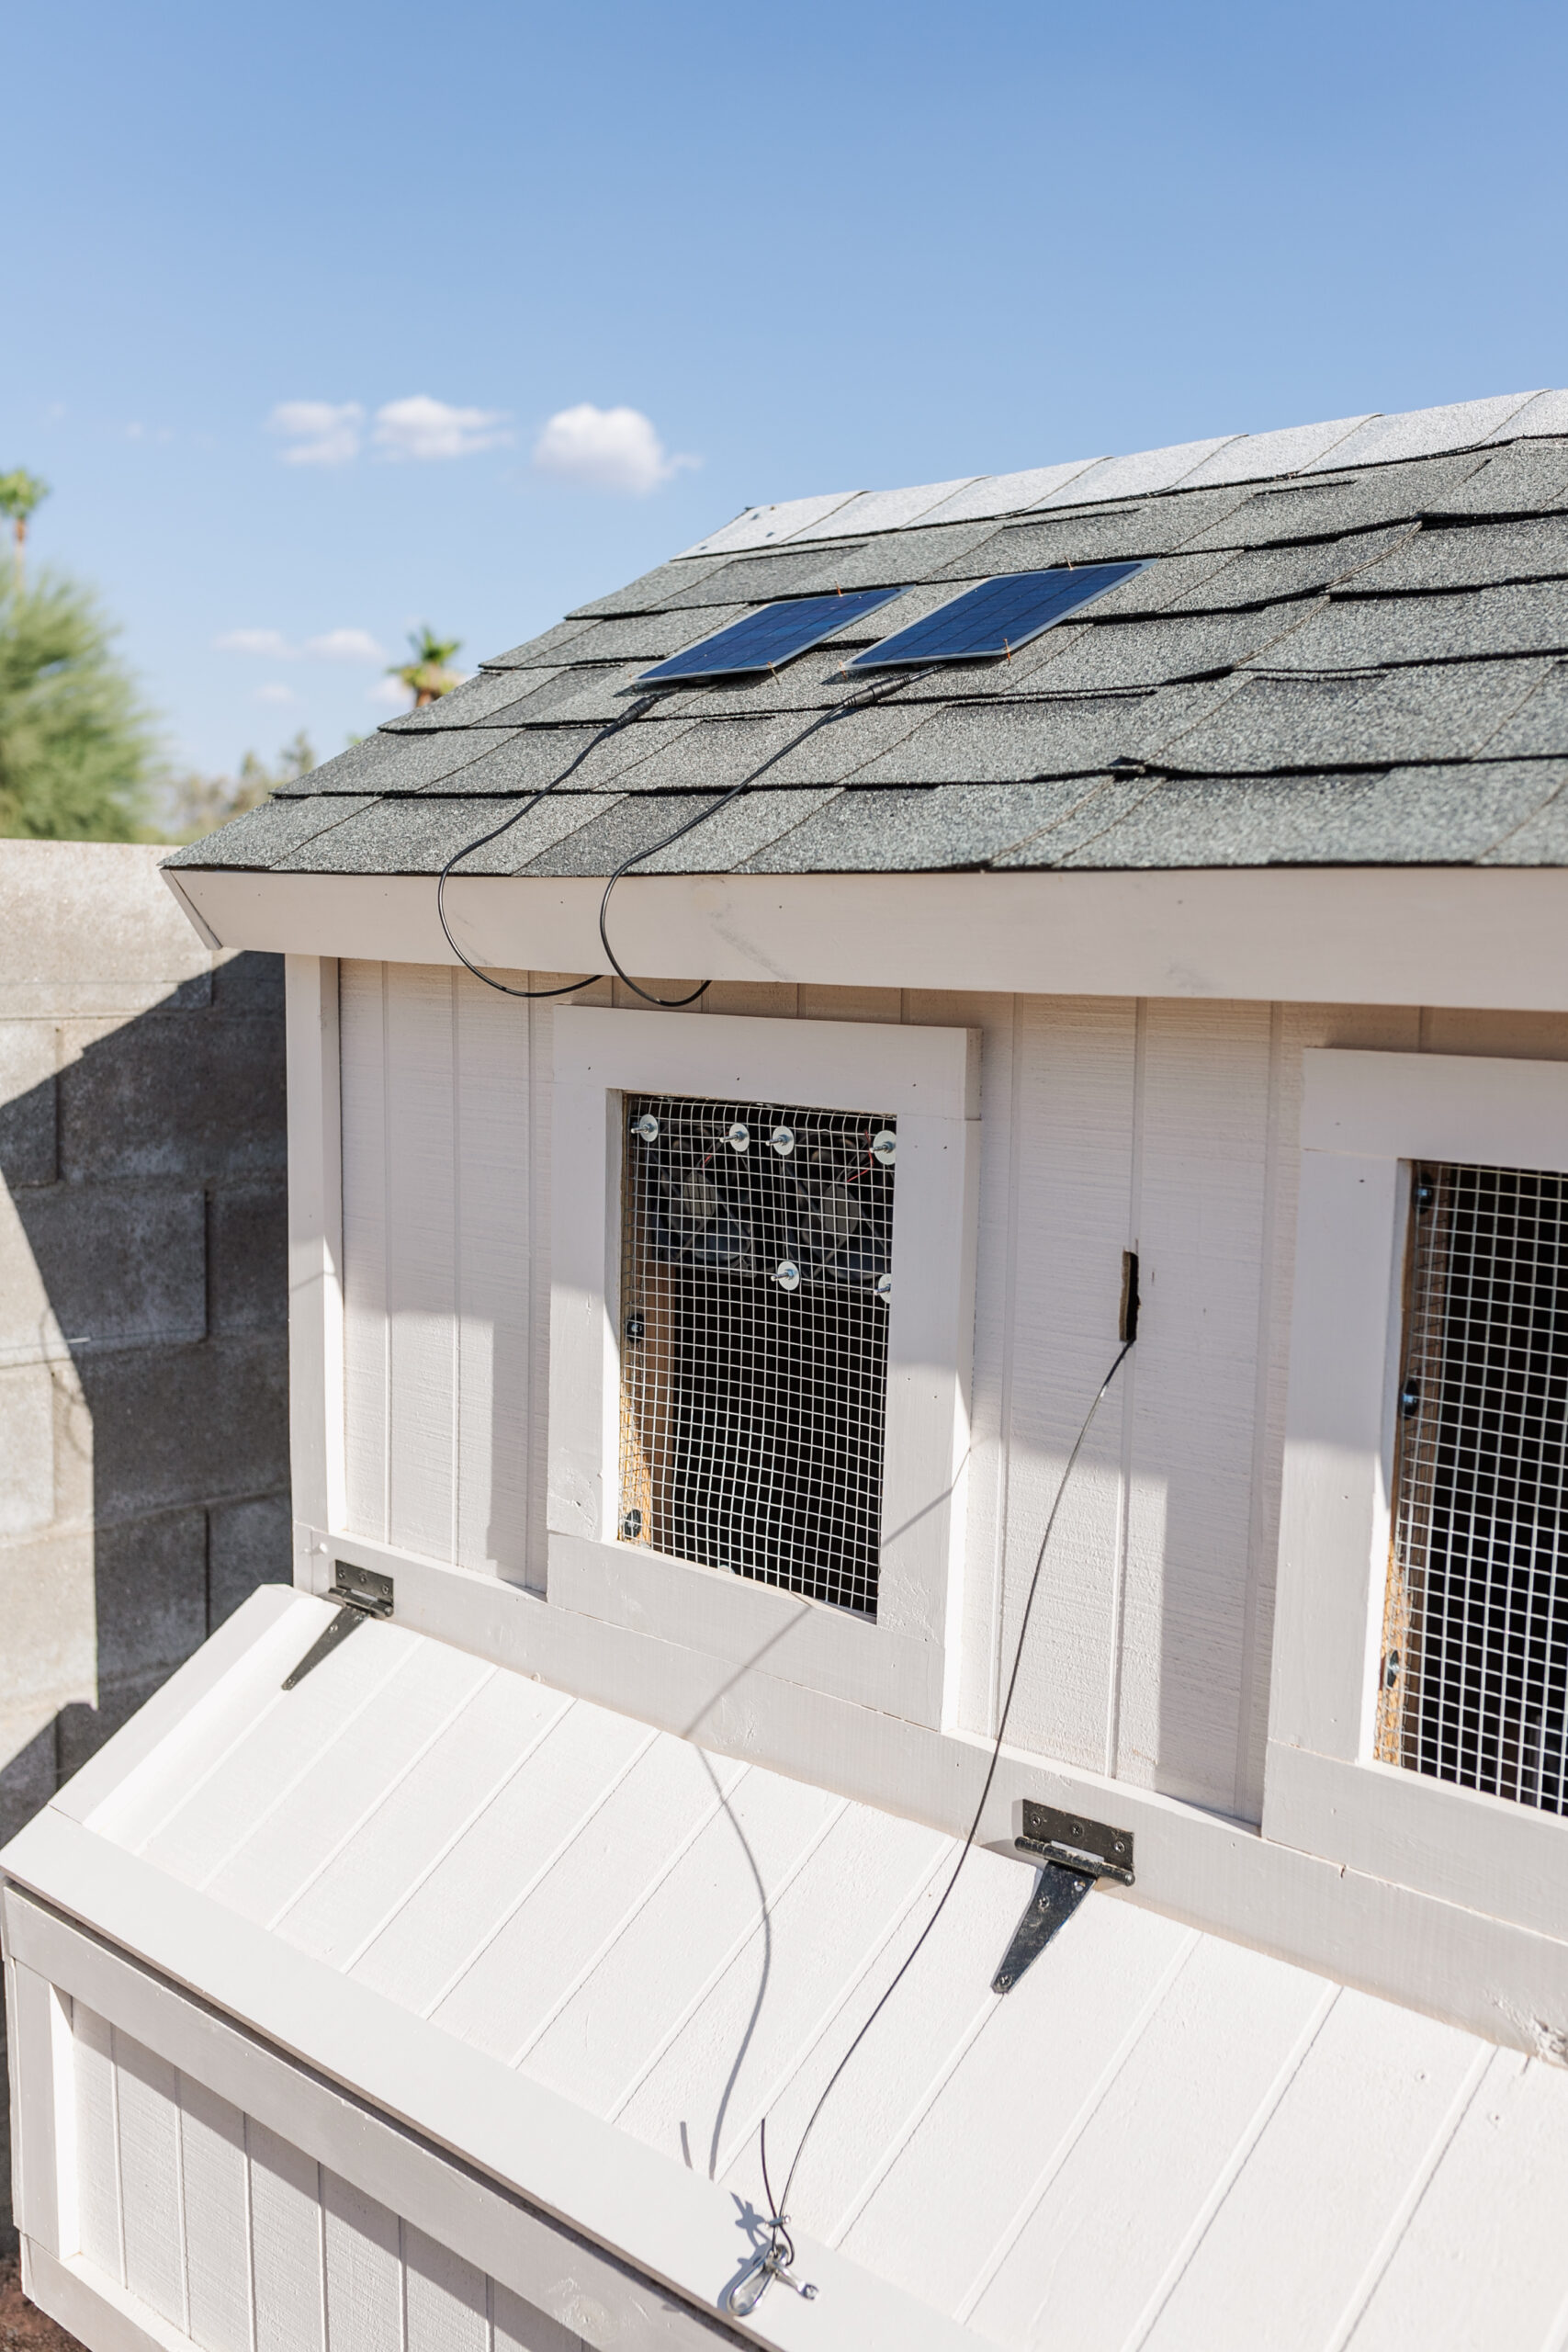 we added these small solar exhaust fans to keep airflow moving inside the coop